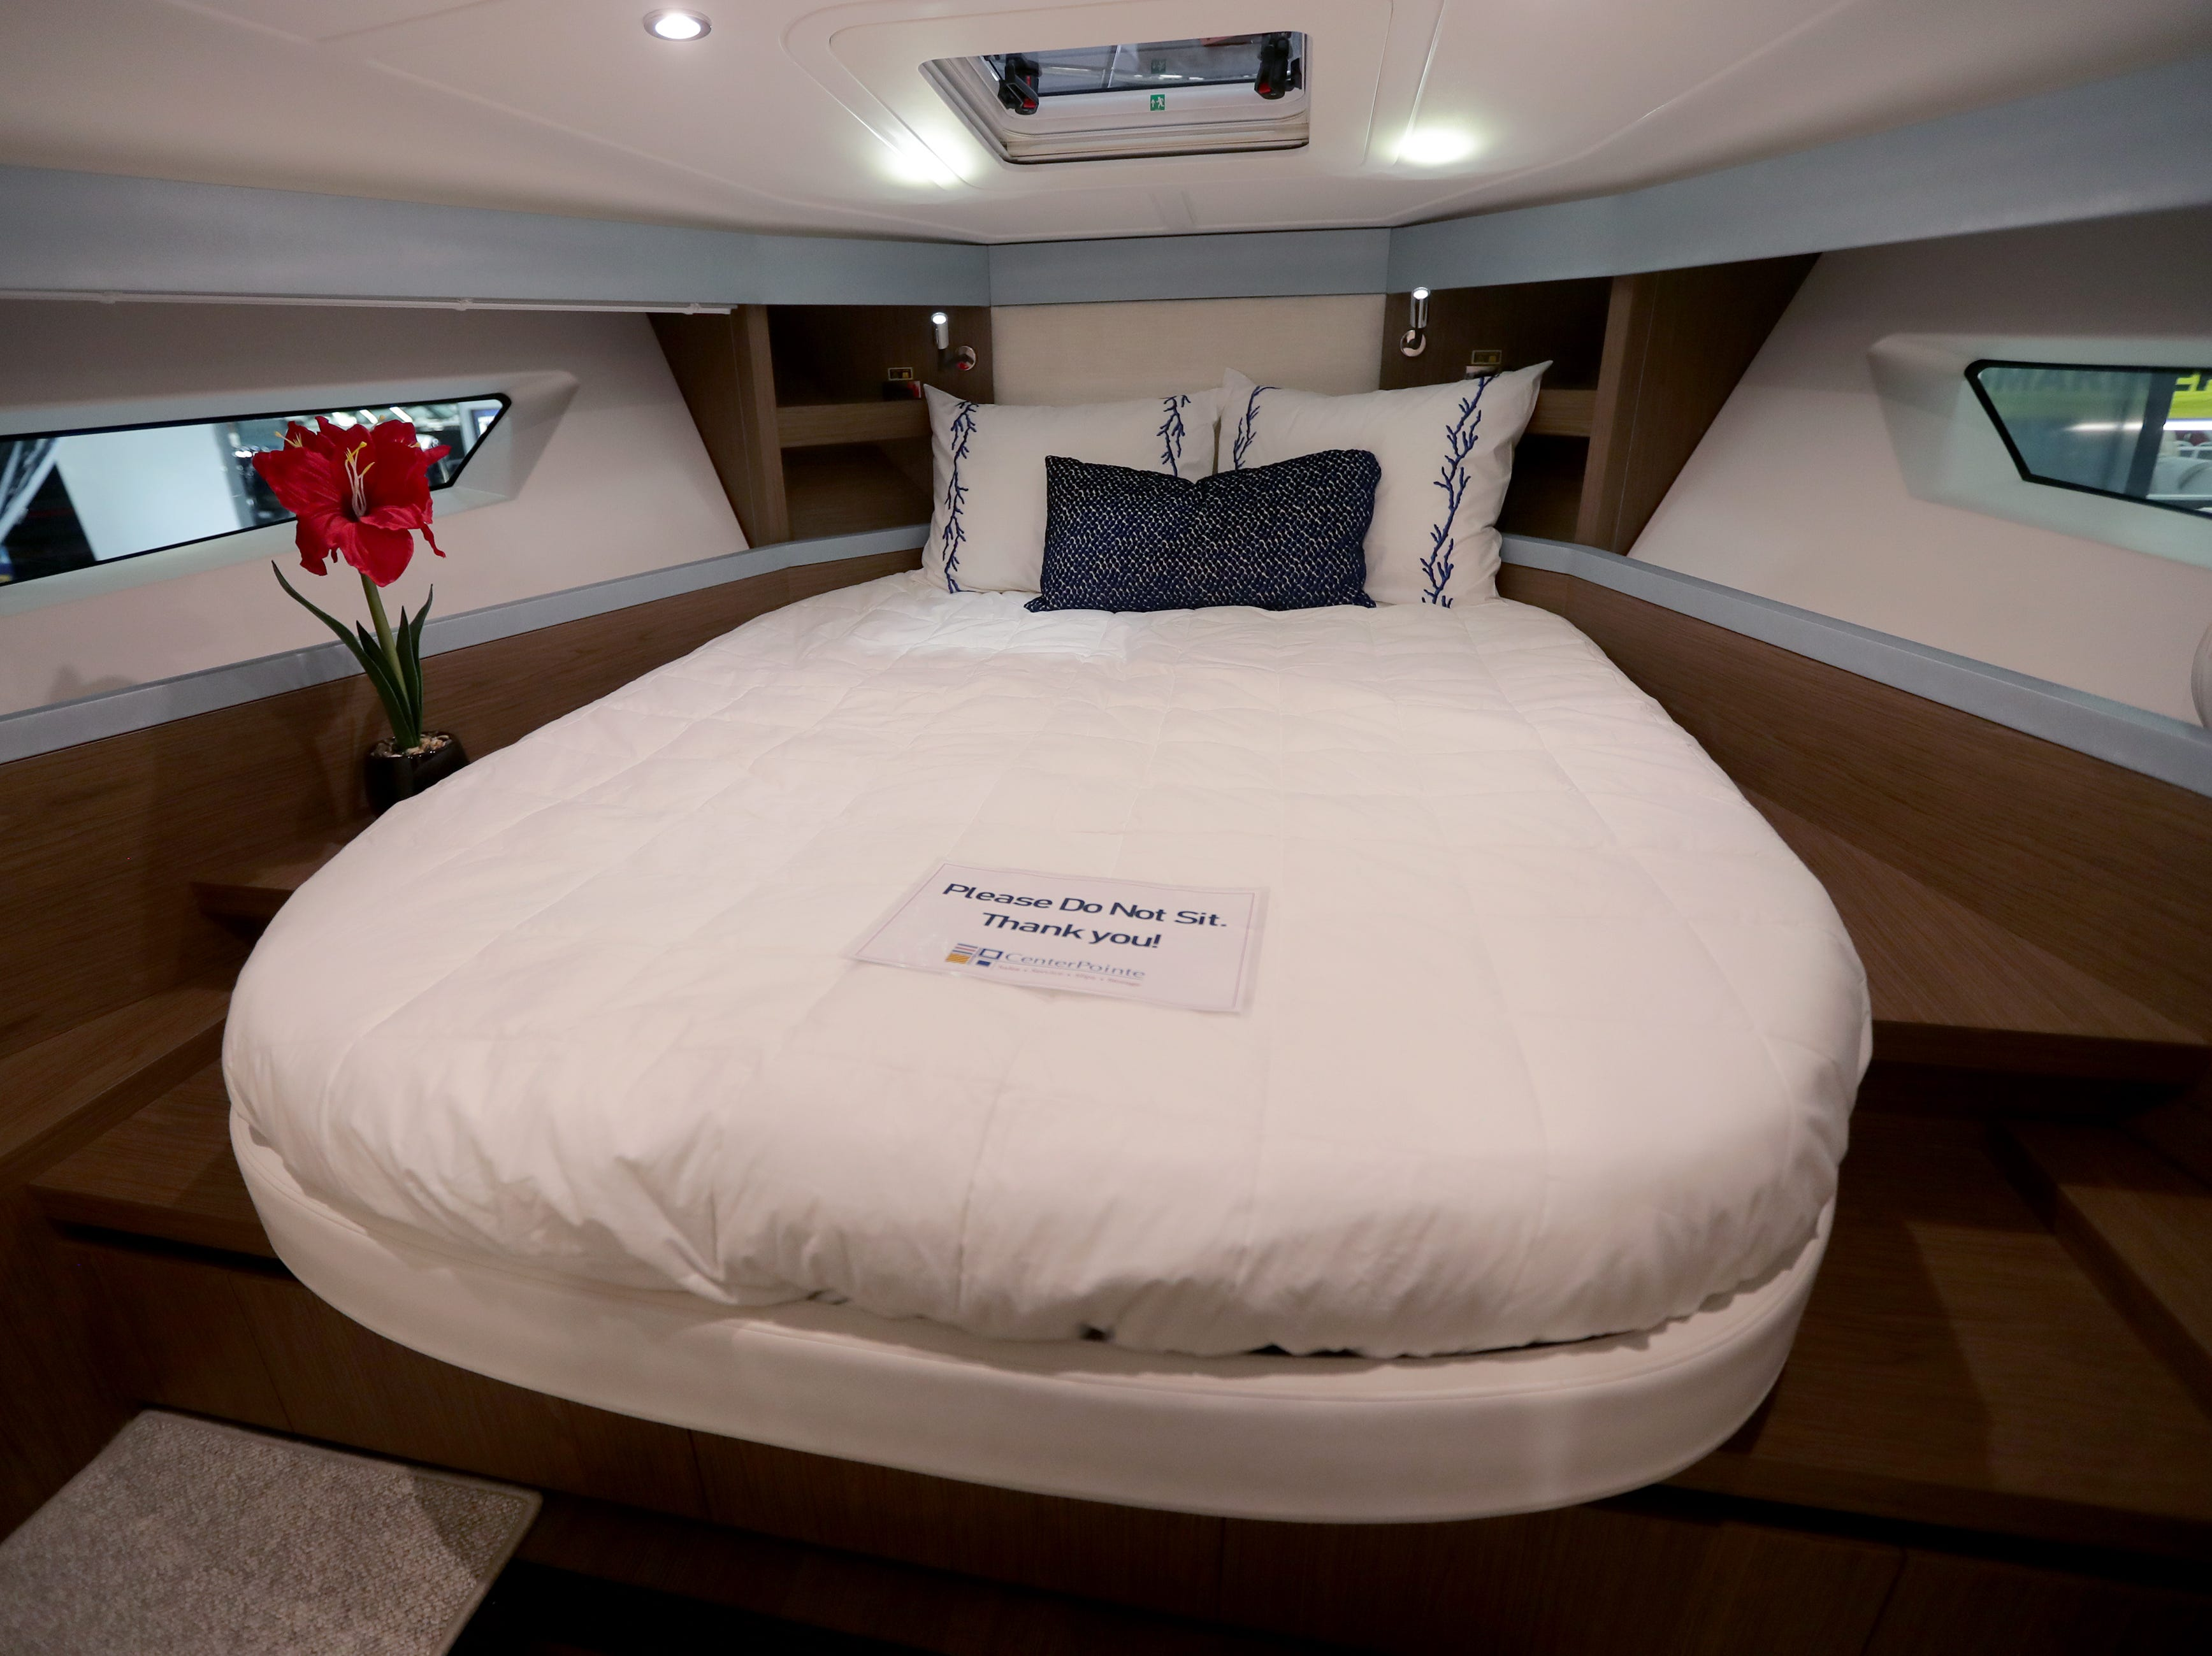 The master berth in a 2019 40-foot Beneteau yacht, which lists for $500,000.